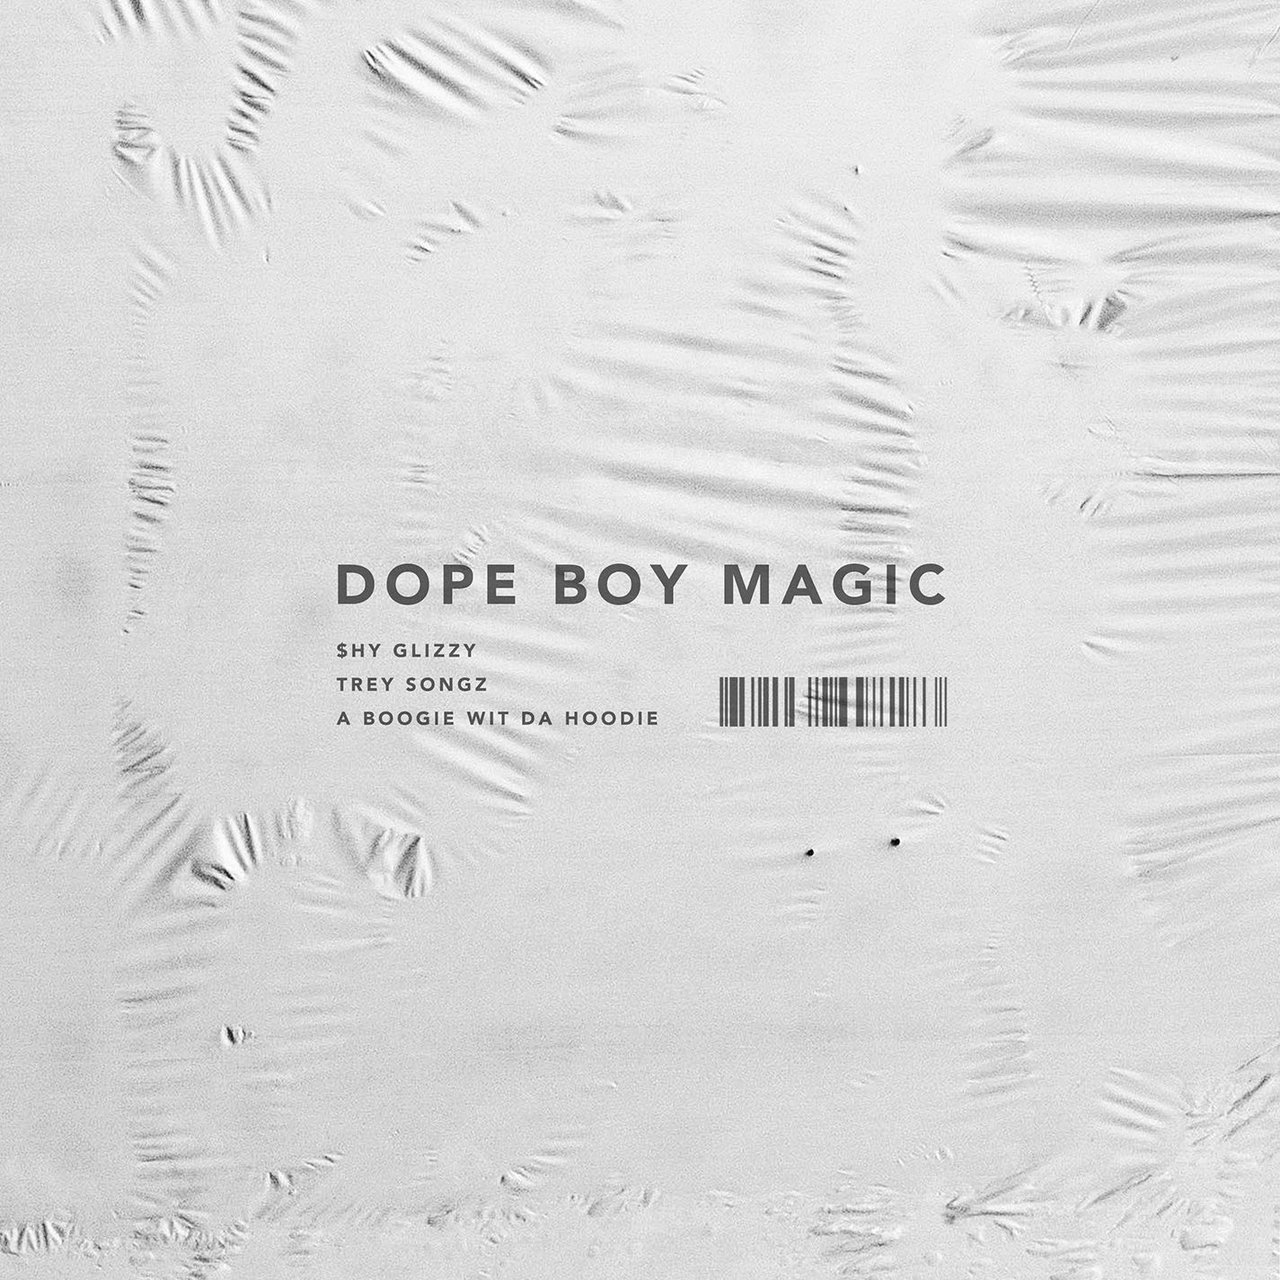 Dope Boy Magic (feat. Trey Songz and A Boogie wit da Hoodie)